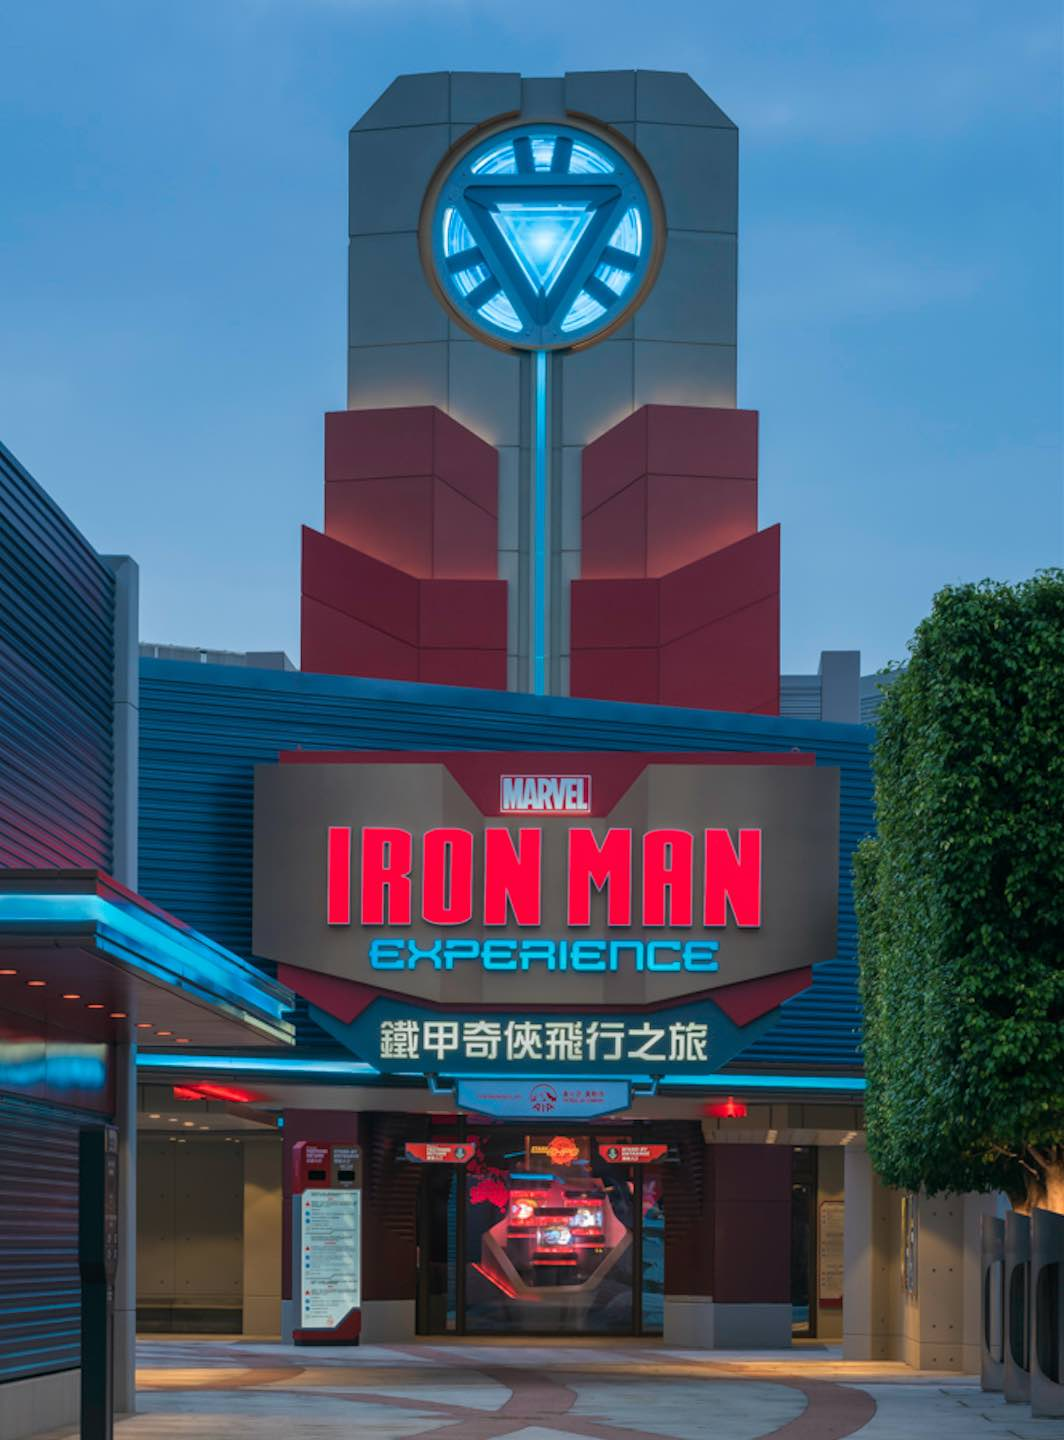 iron-man-experience-entrance-at-hong-kong-disneyland-aspirantsg